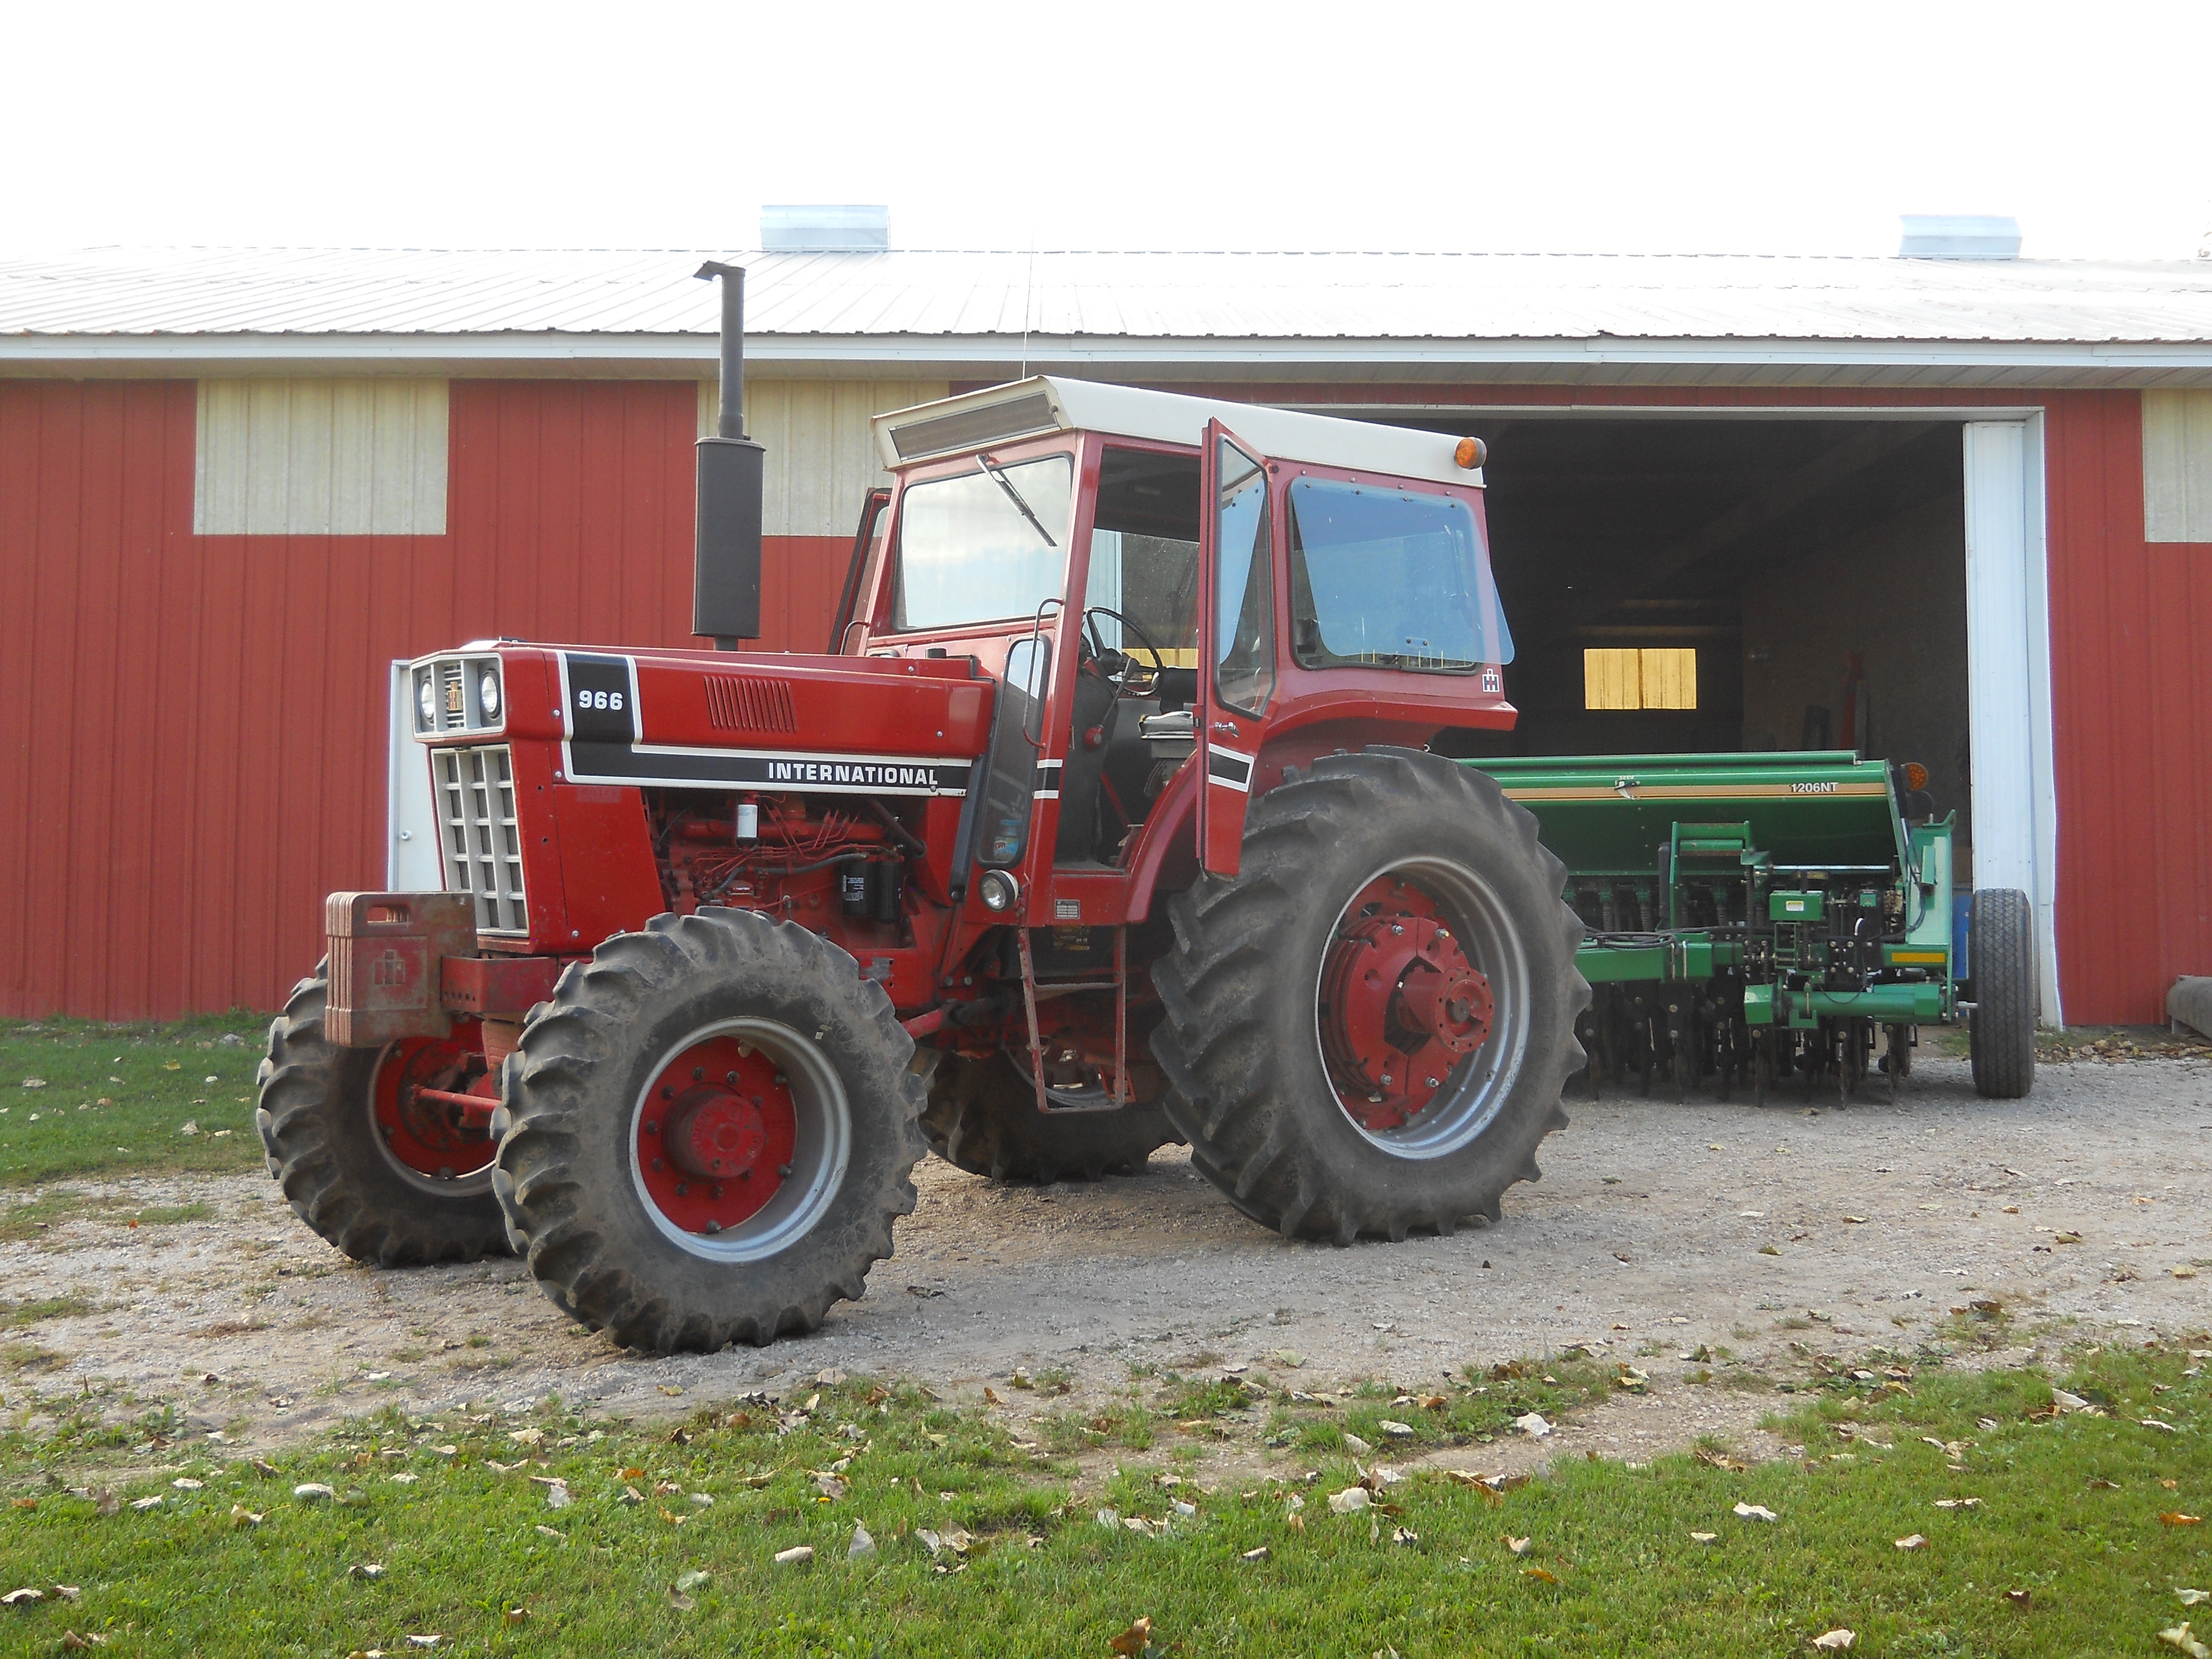 Value of 966 mfwd - General IH - Red Power Magazine Community on